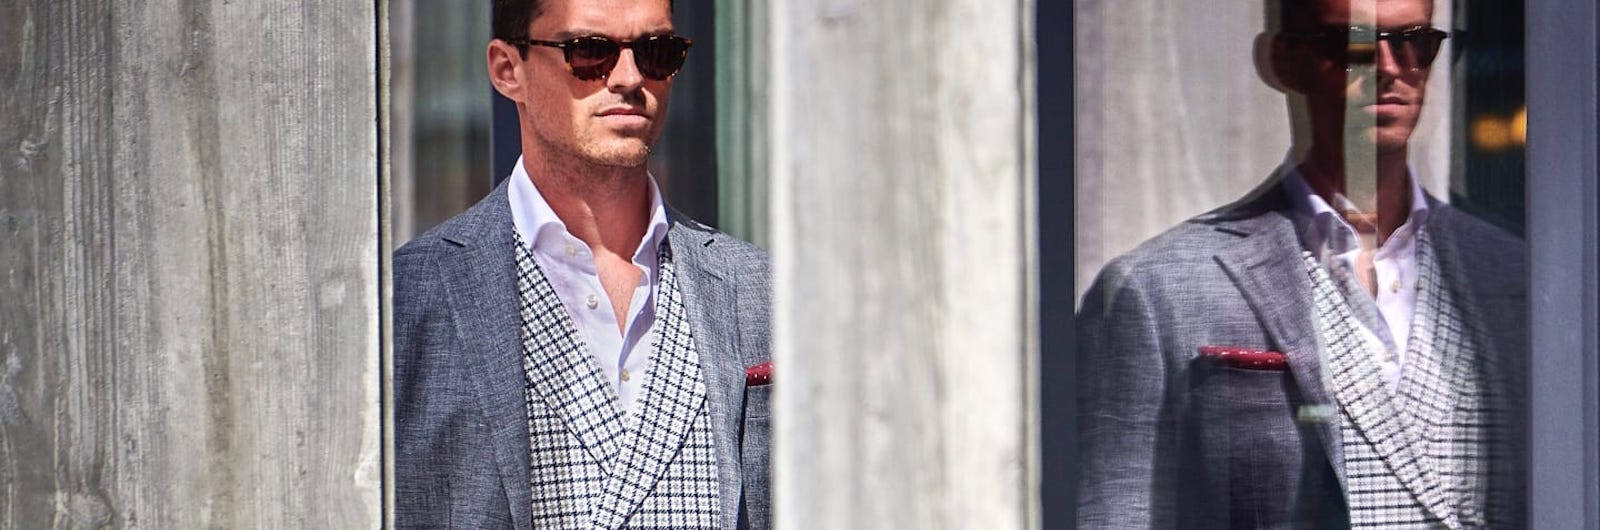 Suitsupply's Outlet Sale Starts Tomorrow, But Not For You